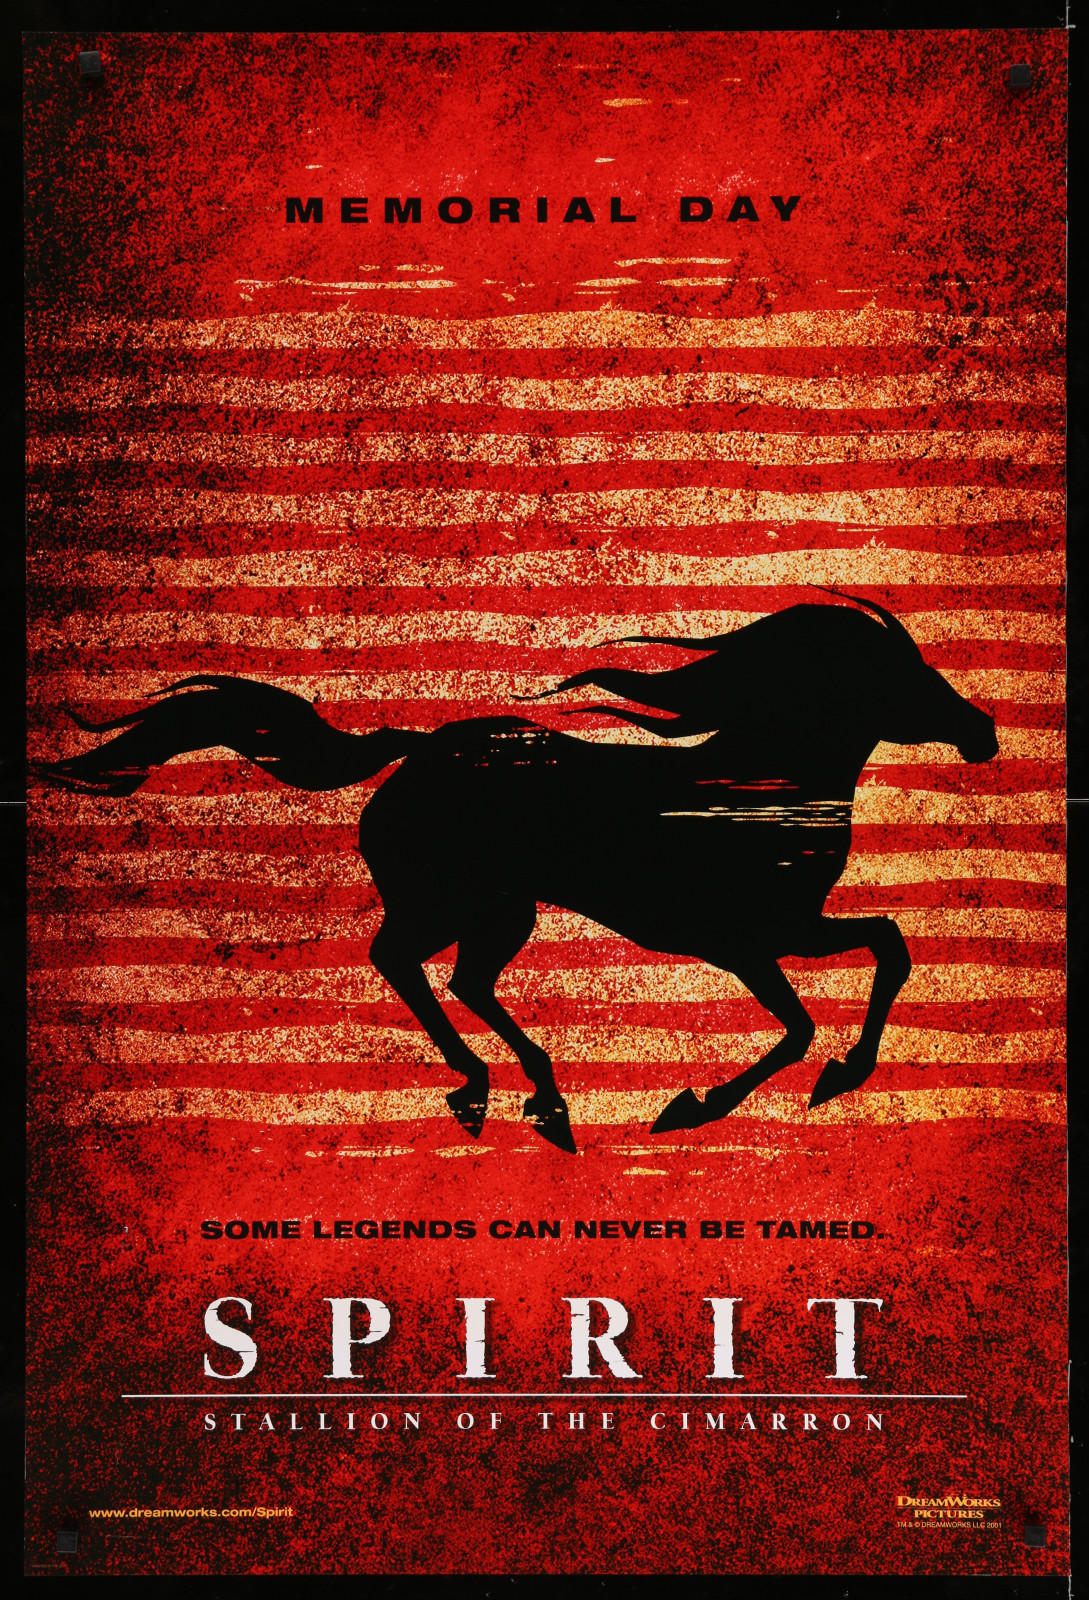 Spirit (Memorial Day – Red) 2A366 A Part Of A Lot 29 Unfolded Double-Sided 27X40 One-Sheets '90S-00S Great Movie Images!